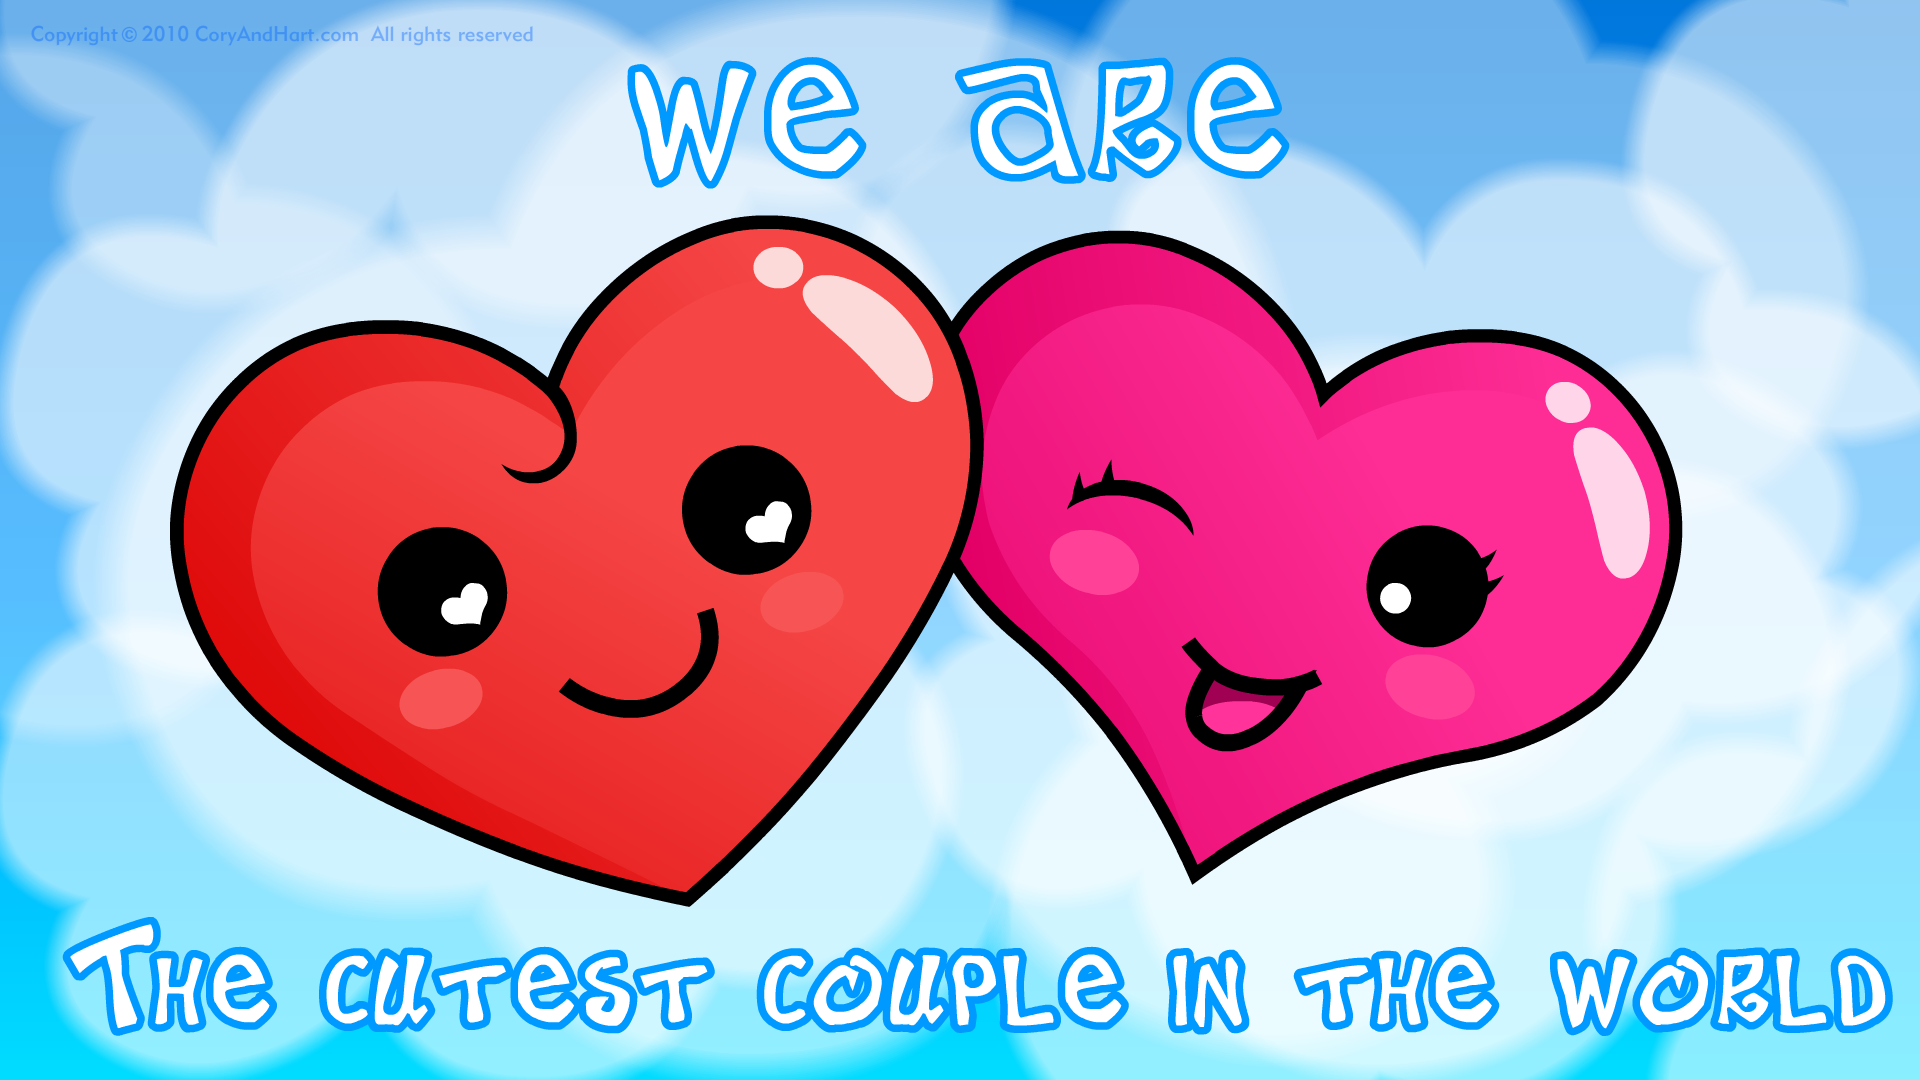 wallpaper Cute Love is all around 1920x1080